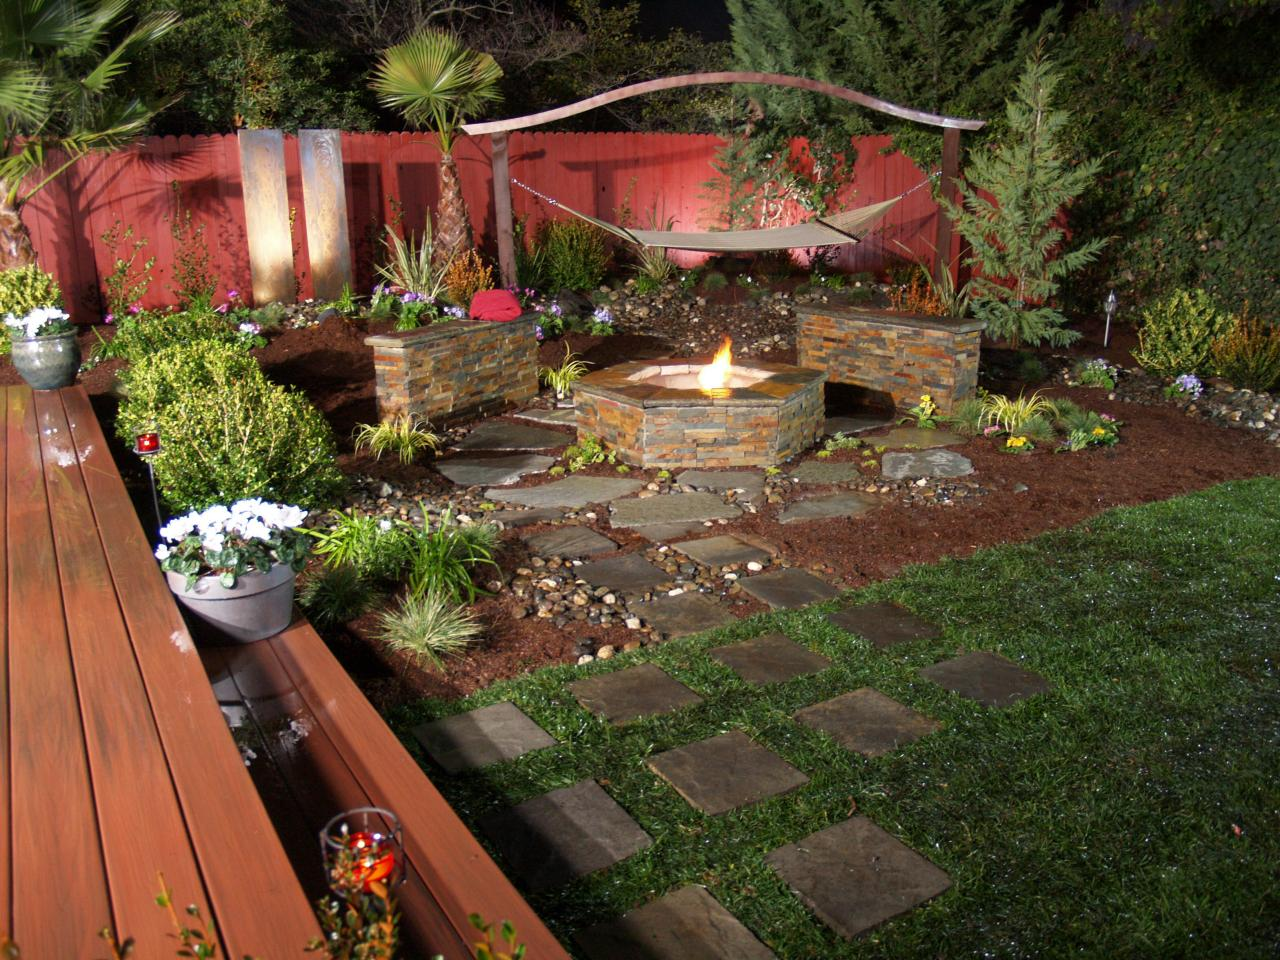 50 Best Outdoor Fire Pit Design Ideas for 2019 on Garden Ideas With Fire Pit id=30268